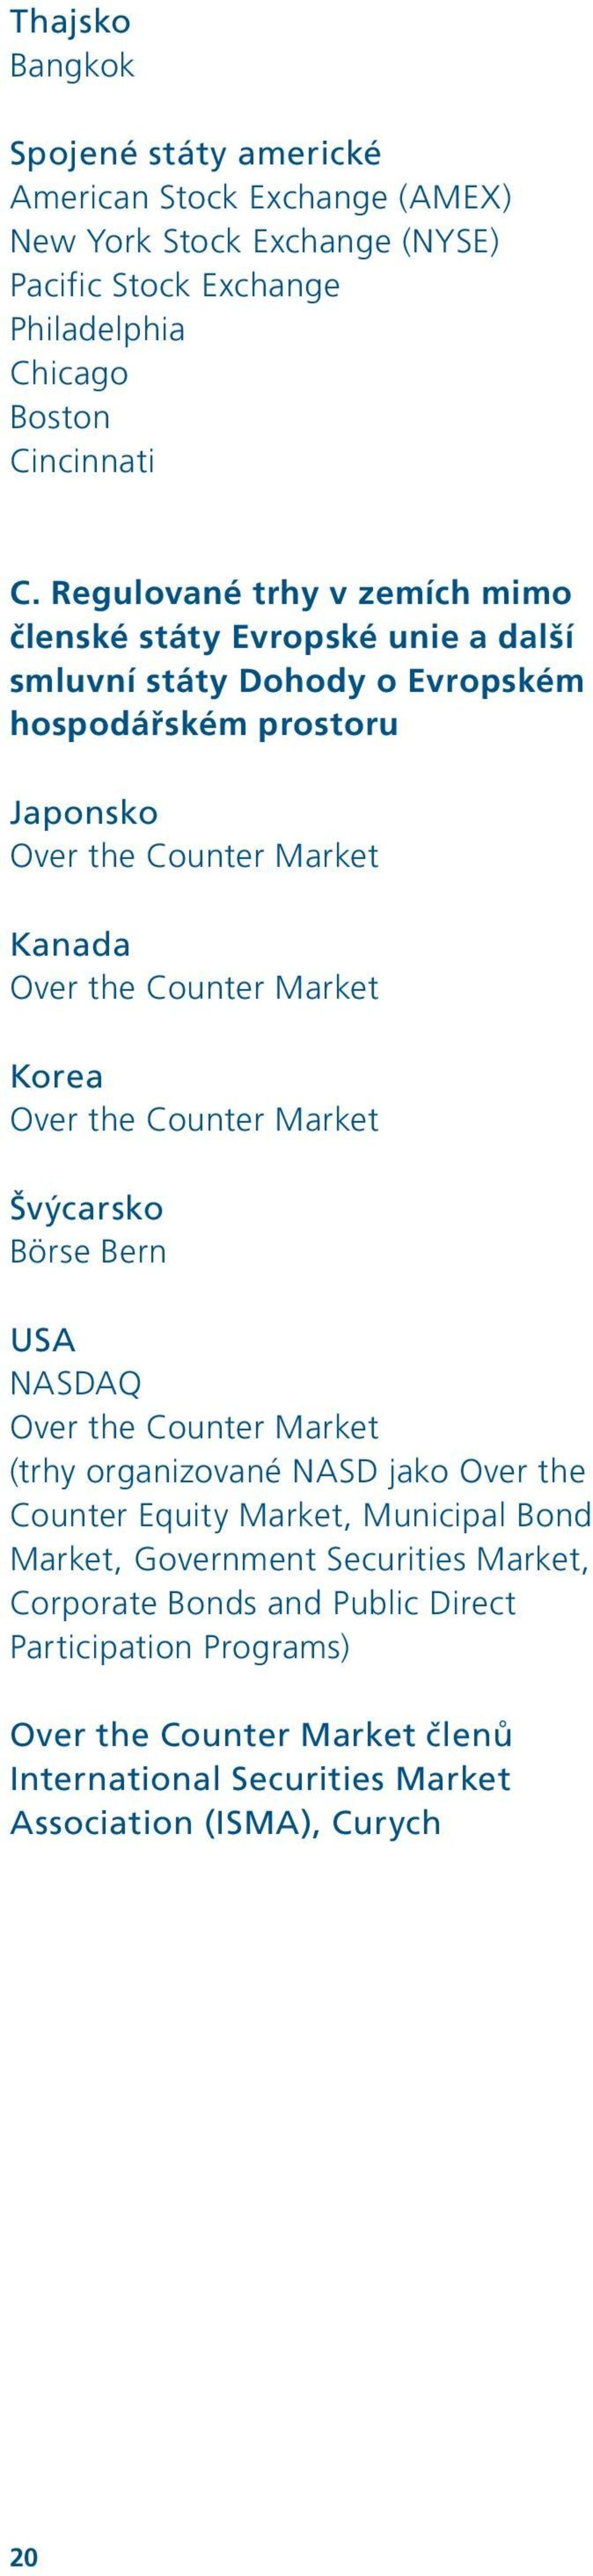 Counter Market Korea Over the Counter Market Švýcarsko Börse Bern USA NASDAQ Over the Counter Market (trhy organizované NASD jako Over the Counter Equity Market, Municipal